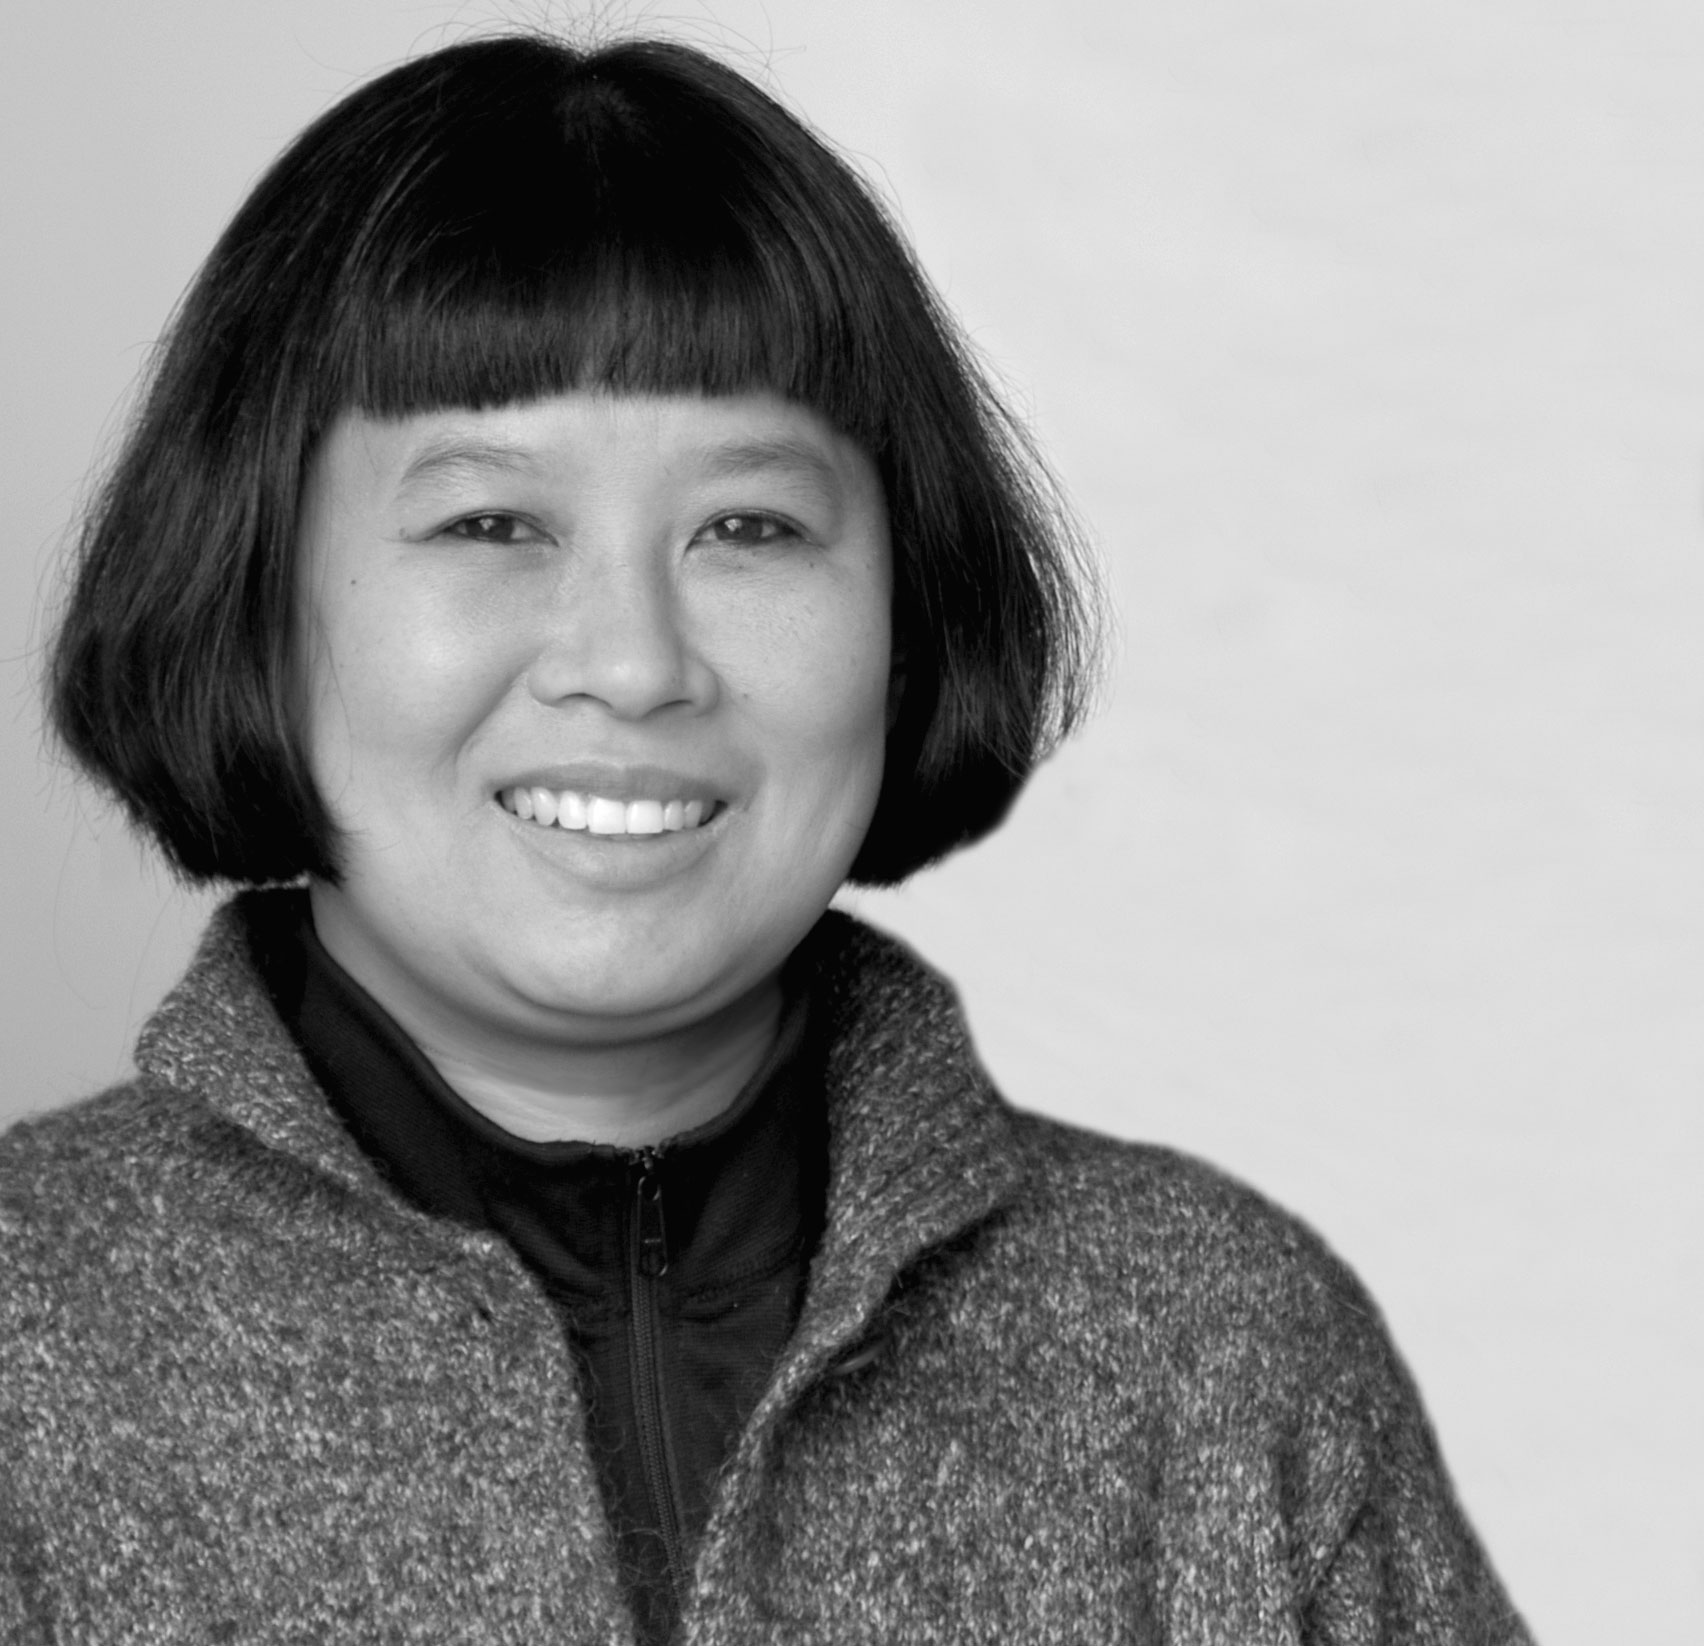 Brigitte Shim  is a Professor at the John H. Daniels Faculty of Architecture, Landscape, and Design at the University of Toronto and a principal at Shim-Sutcliffe Architects. She has been teaching at the Daniels Faculty since 1988, and has overseen core design studios, advanced design studios, thesis studios, and courses in the history and theory of landscape architecture. Born in Kingston, Jamaica, Shim graduated from the University of Waterloo with degrees in Environmental Studies and Architecture.